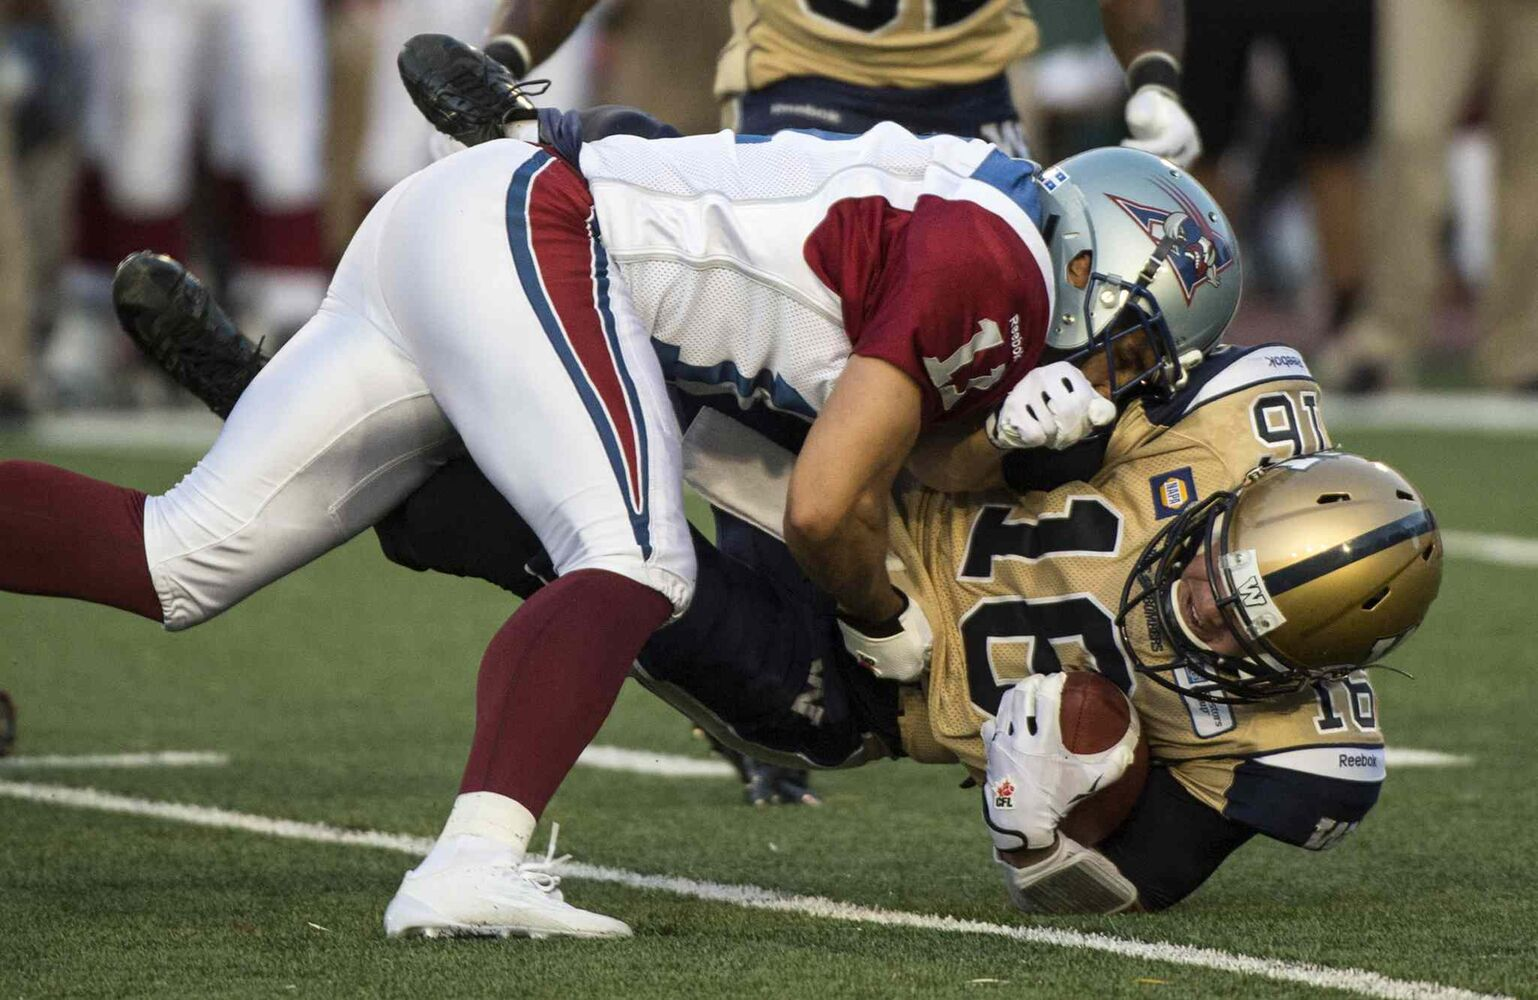 Winnipeg Blue Bombers' quarterback Robert Marve is tackled by Montreal Alouettes' linebacker Chip Cox in the second quarter of Friday's game. (Paul Chiasson / The Canadian Press)